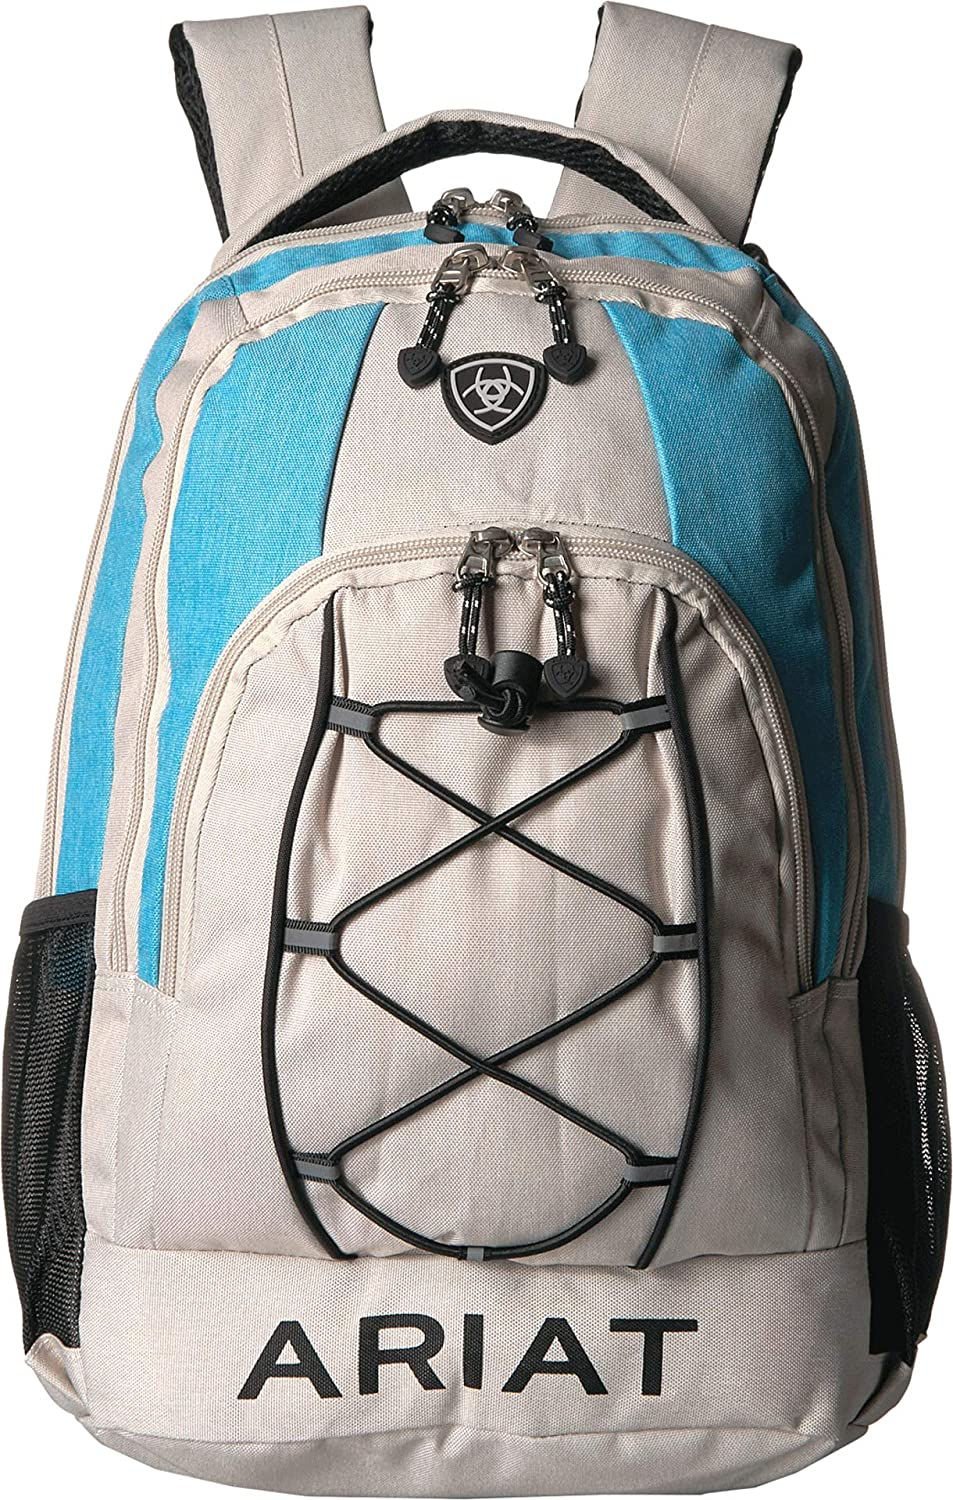 Ariat Unisex Backpack w Bungy Cord Front